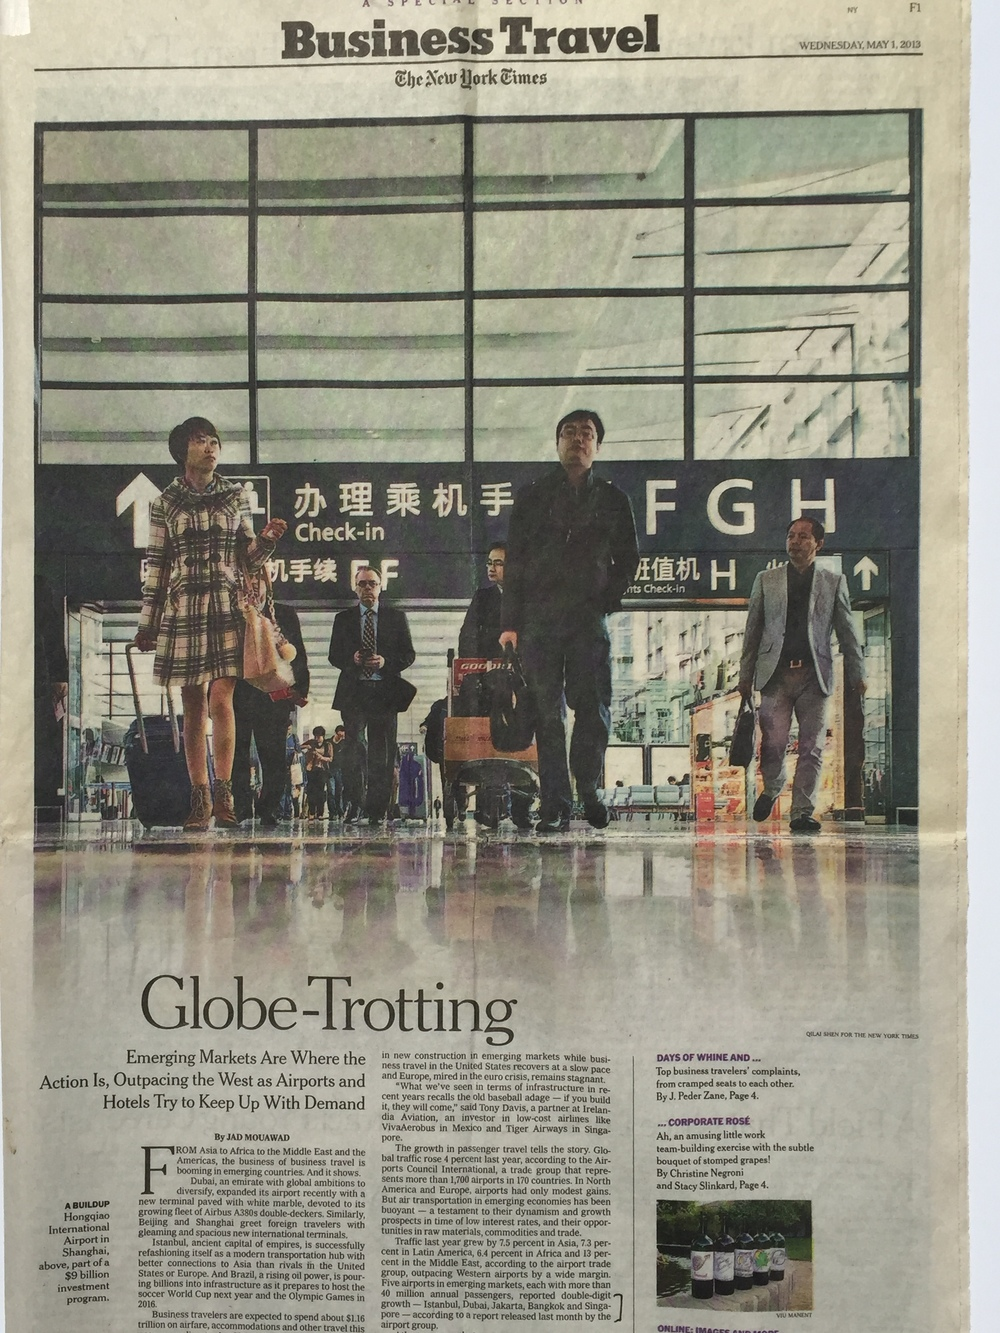 New York Times  Business Travel supplement, May 2013, on the correlation between airport construction/expansion, and emerging markets.